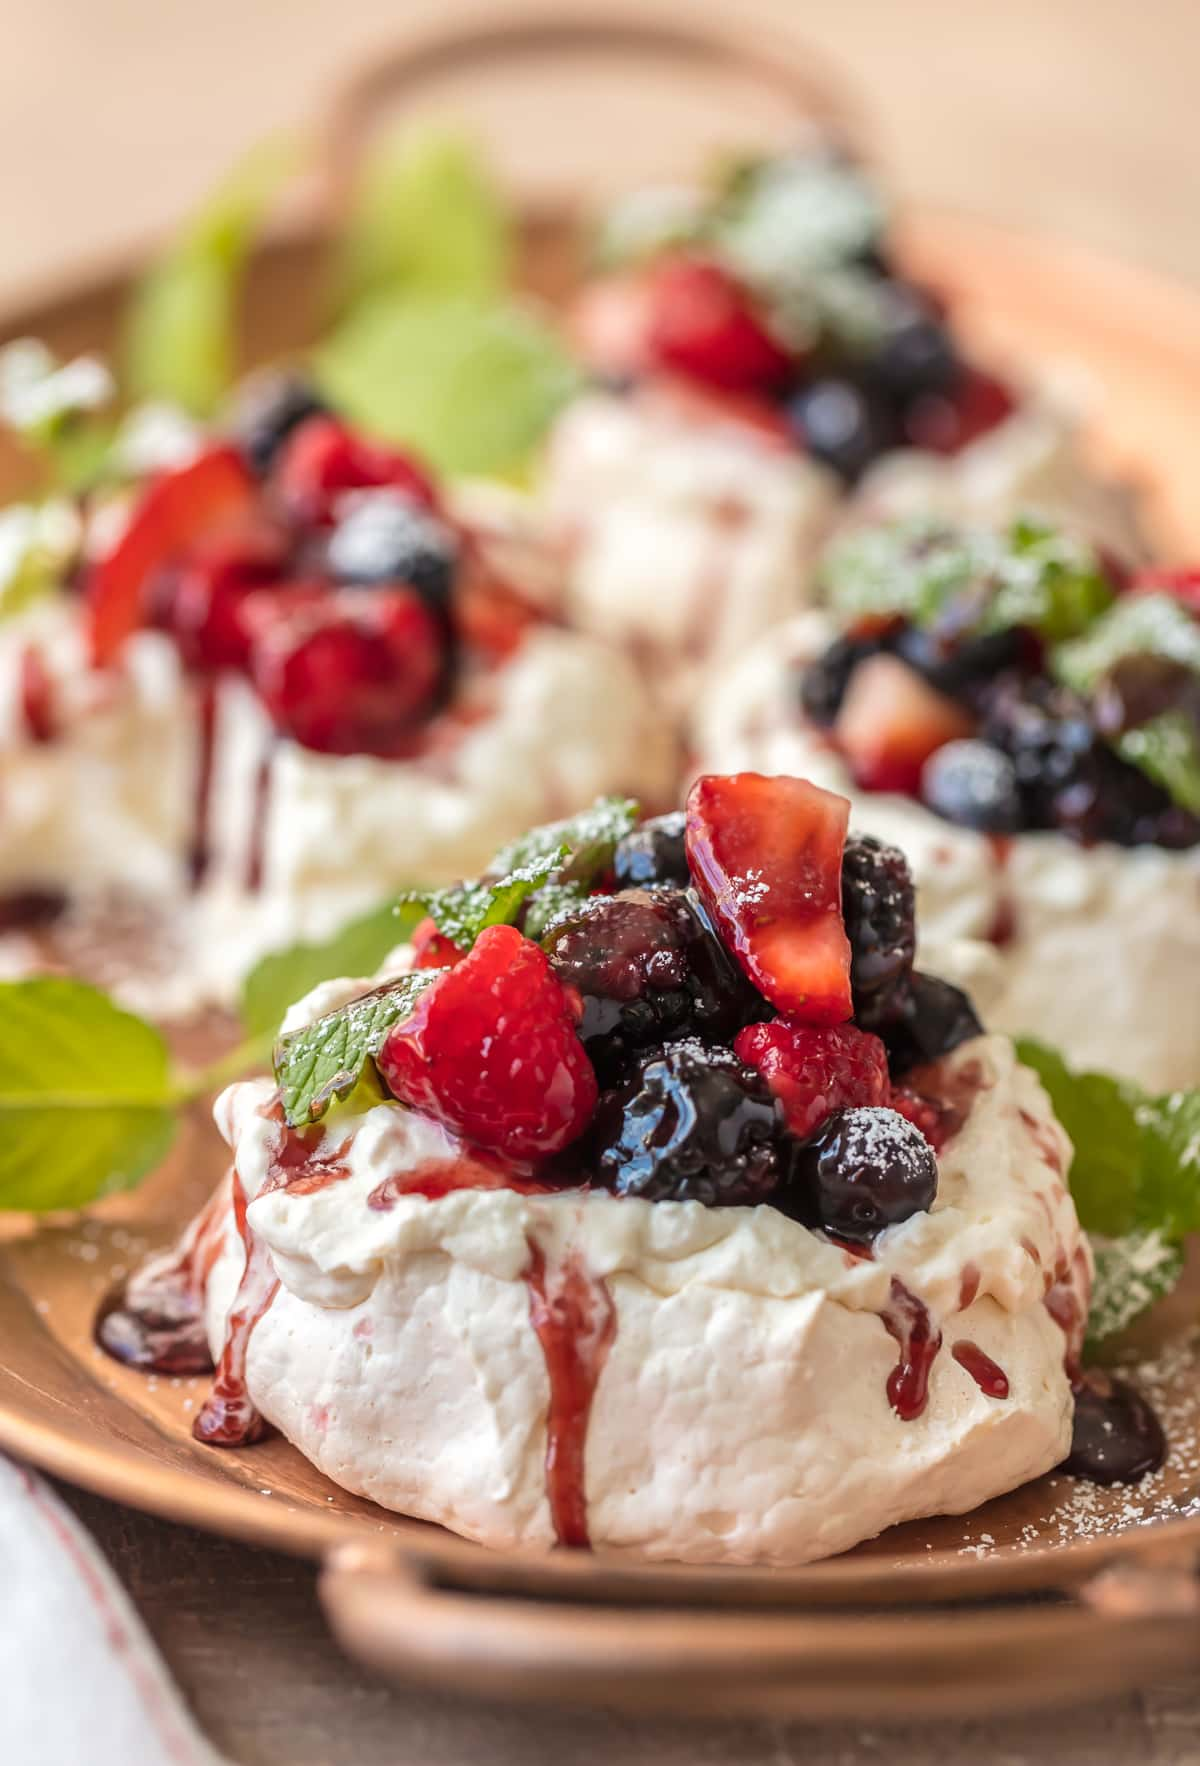 Mini Pavlova recipe topped with berries,sauce, and powdered sugar